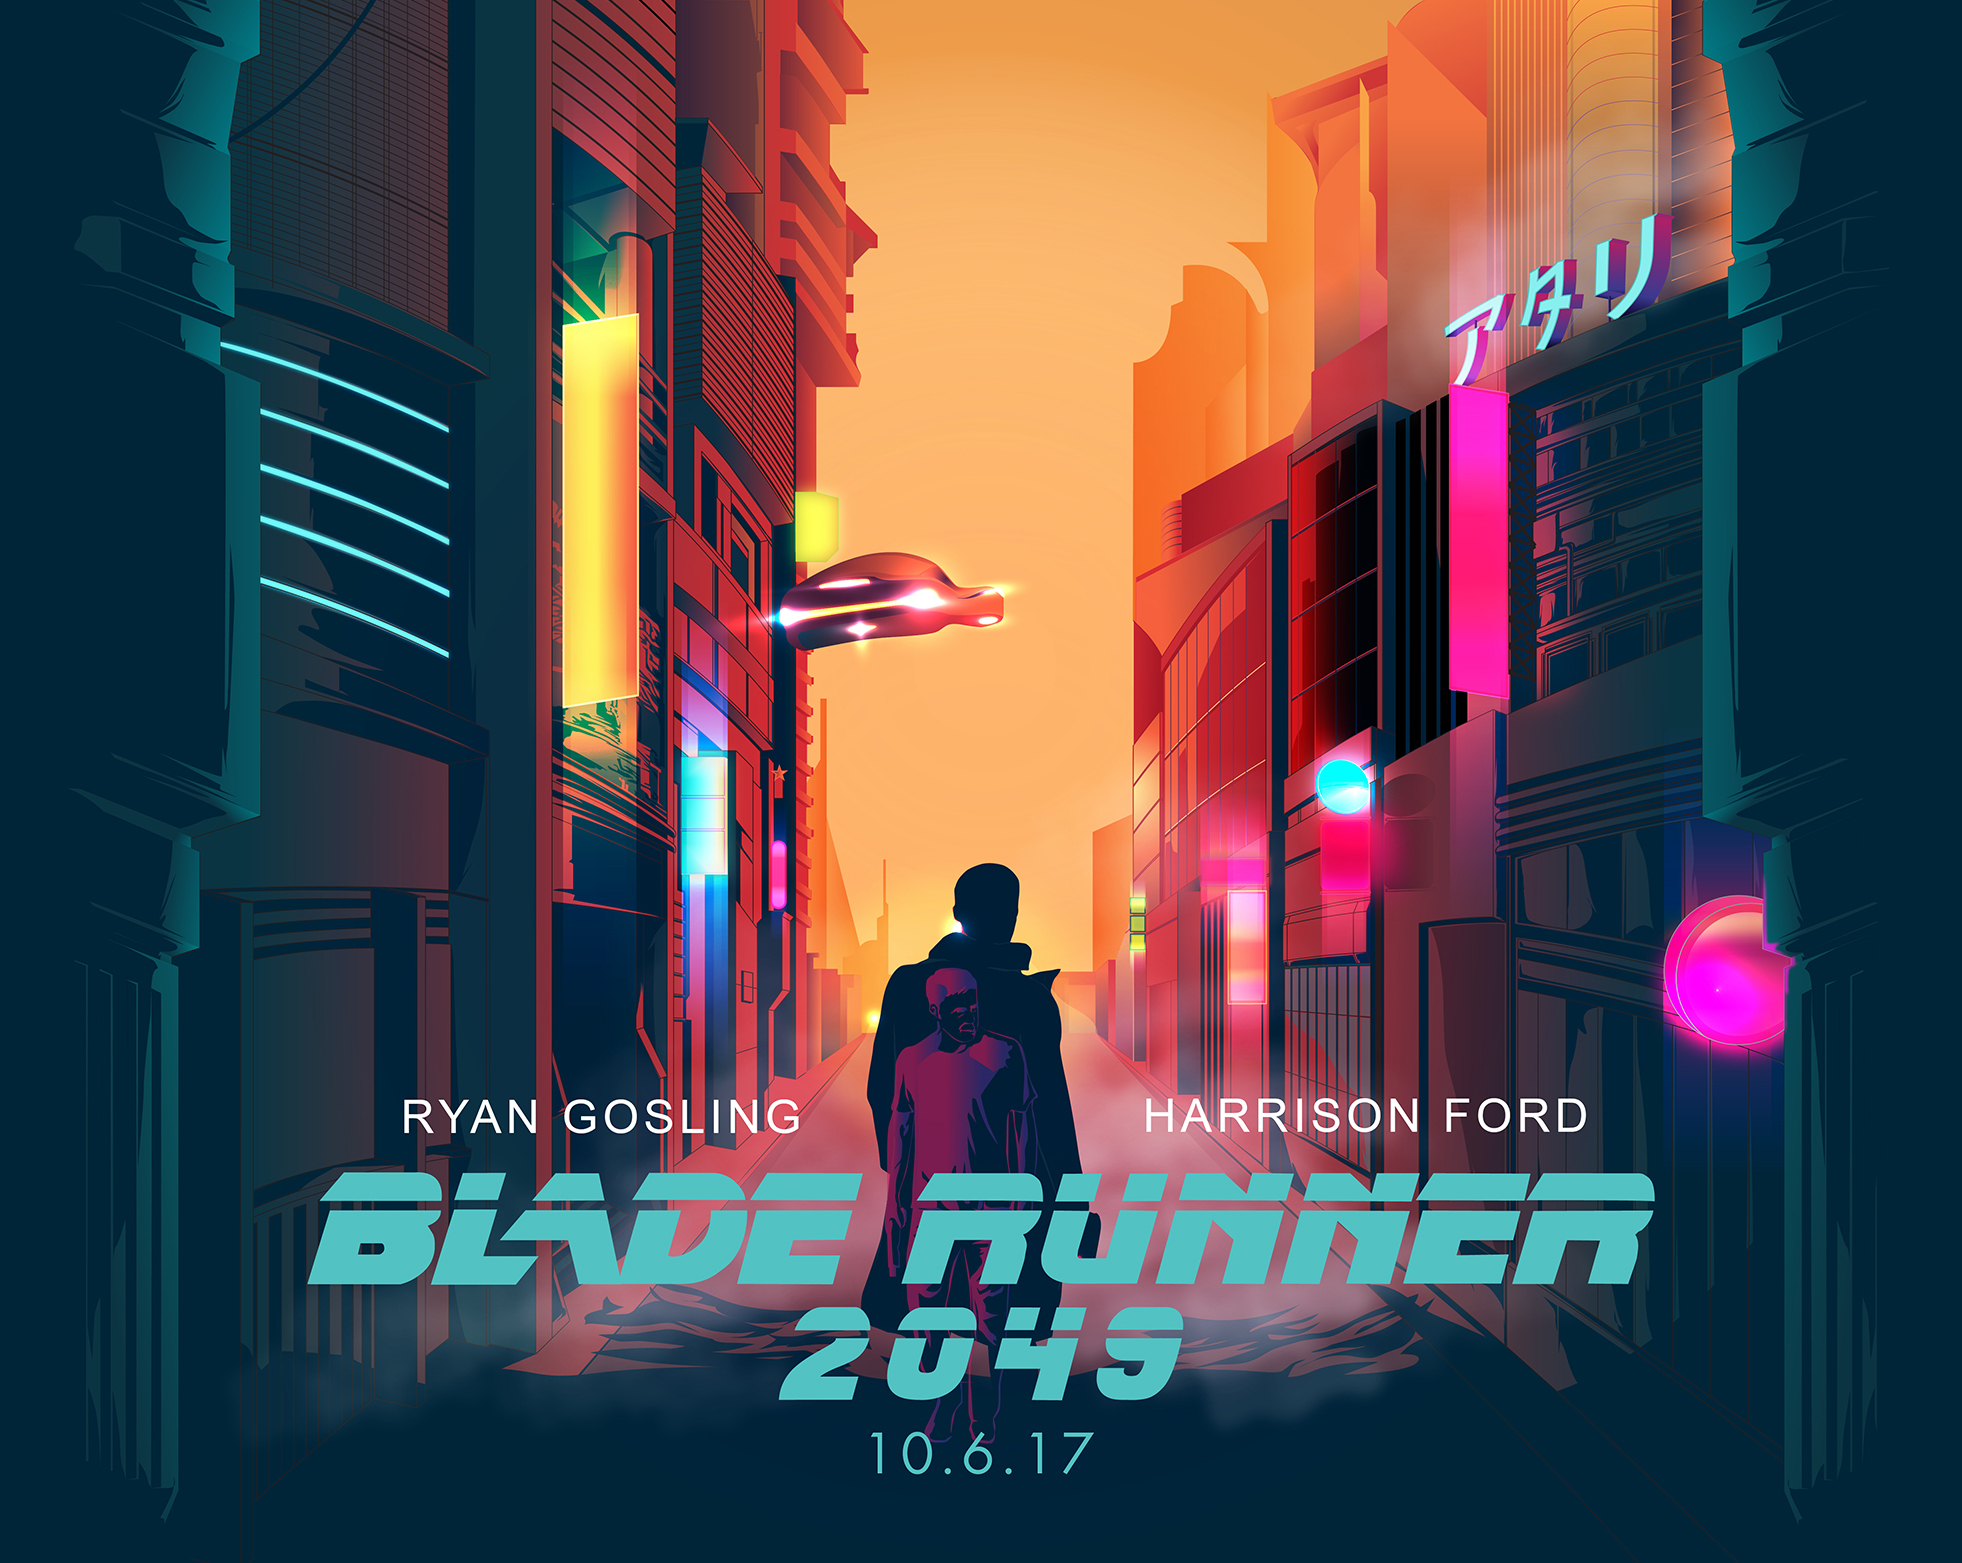 Blade Runner 2049 Hd Wallpapers Pictures Images